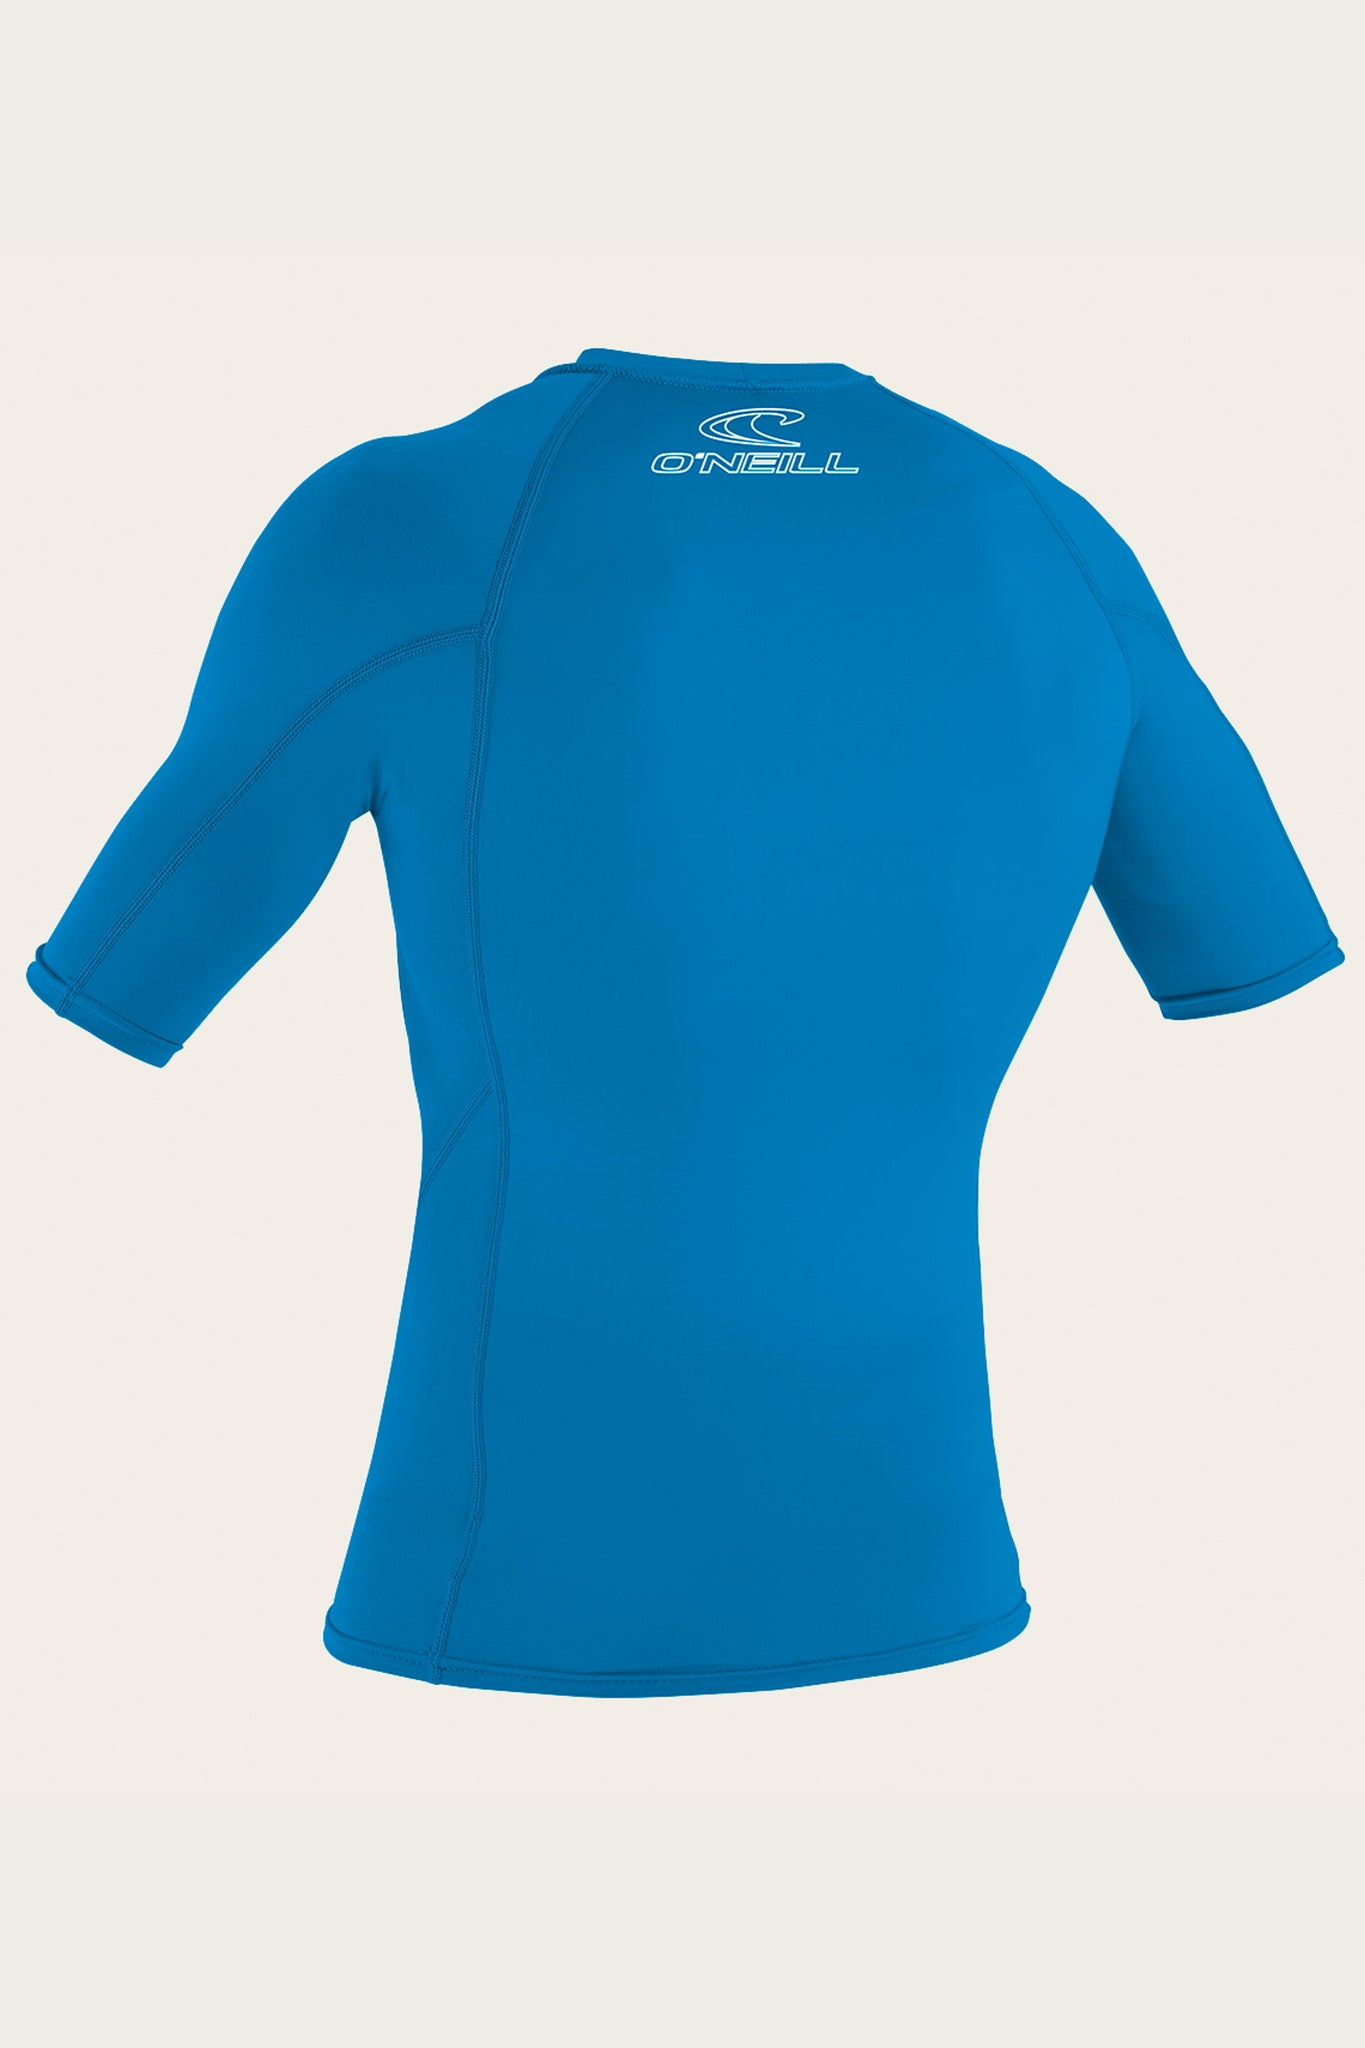 Youth Basic Skins 50+ S/S Rash Guard - Brite Blue | O'Neill